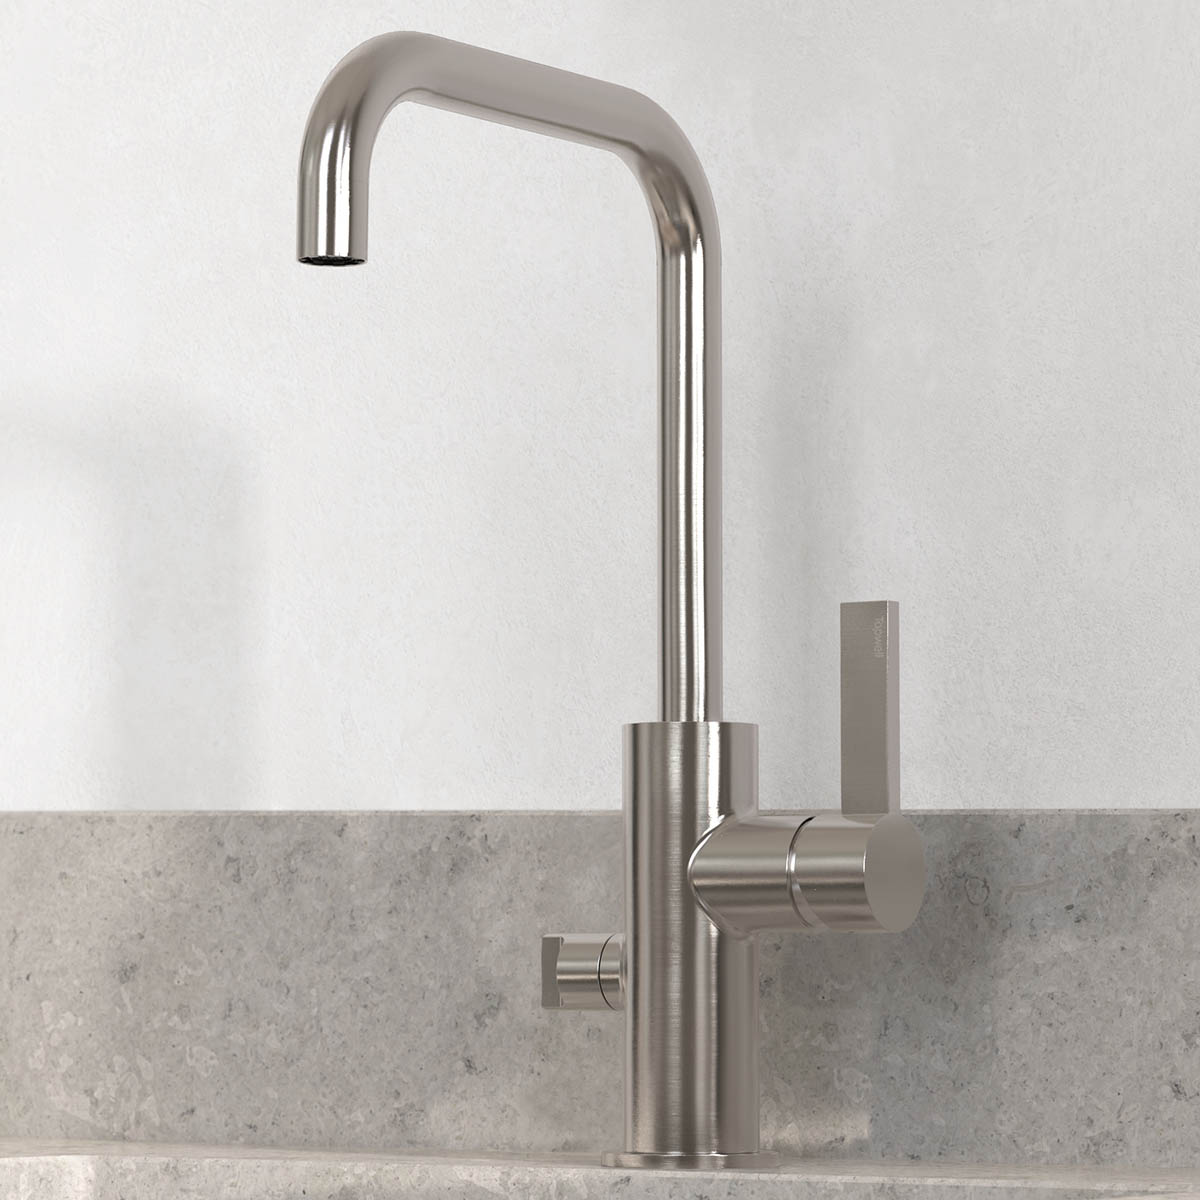 tapwell koksblandare arm984 brushed nickel 9421245 noble concrete grey